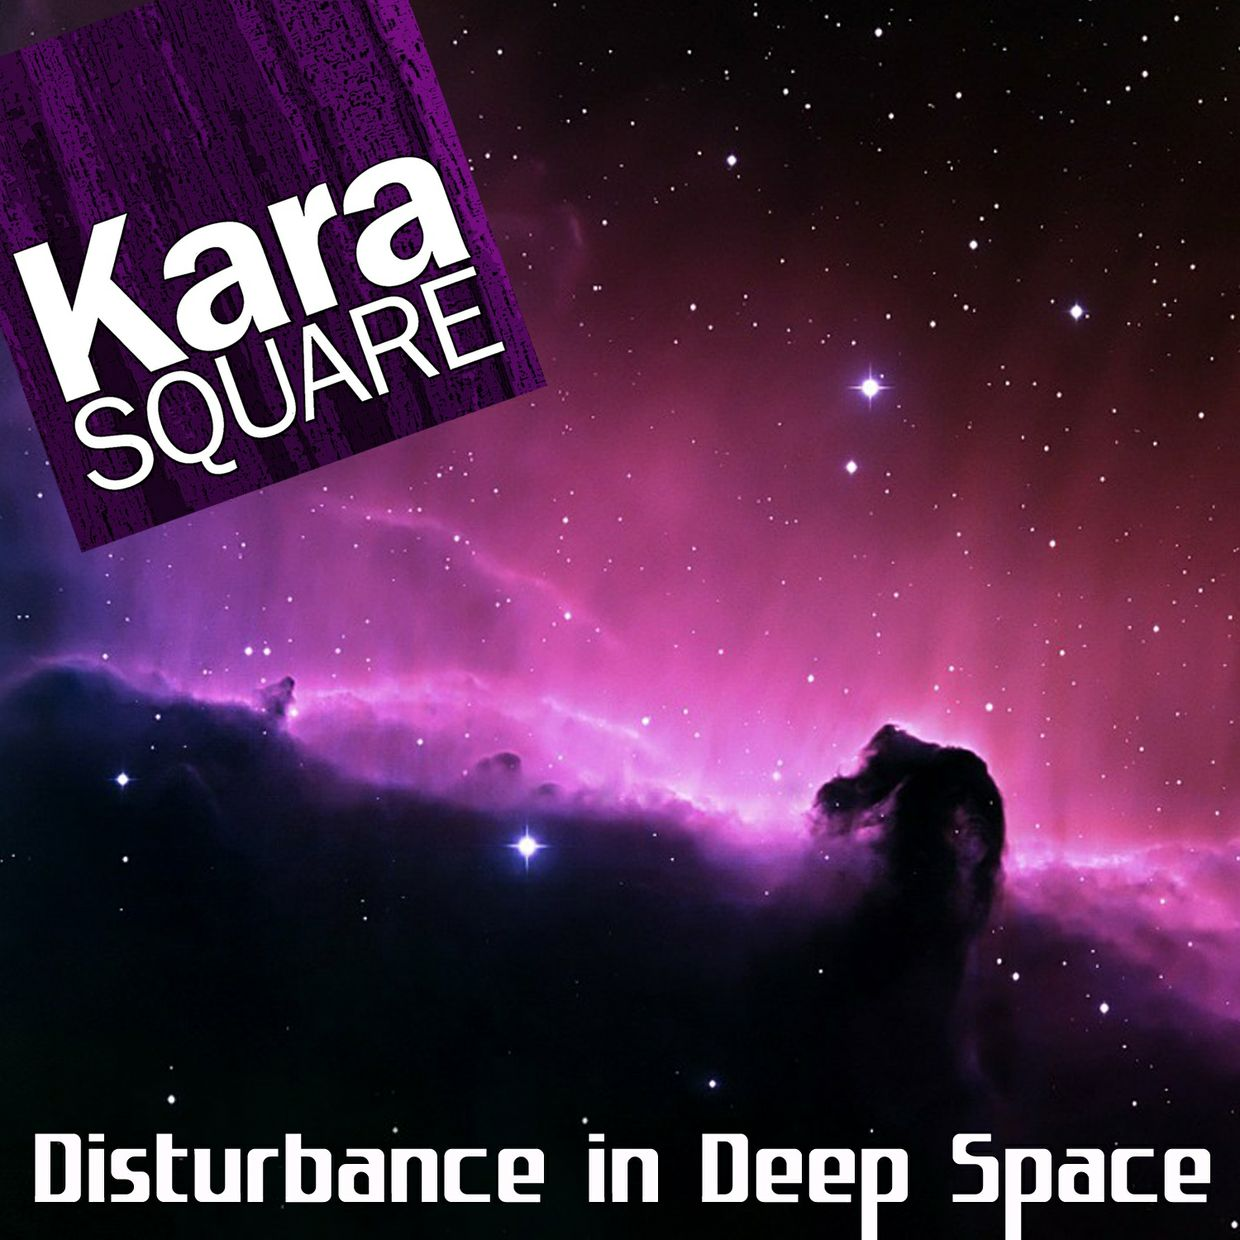 Disturbance in Deep Space - Music for Your Project